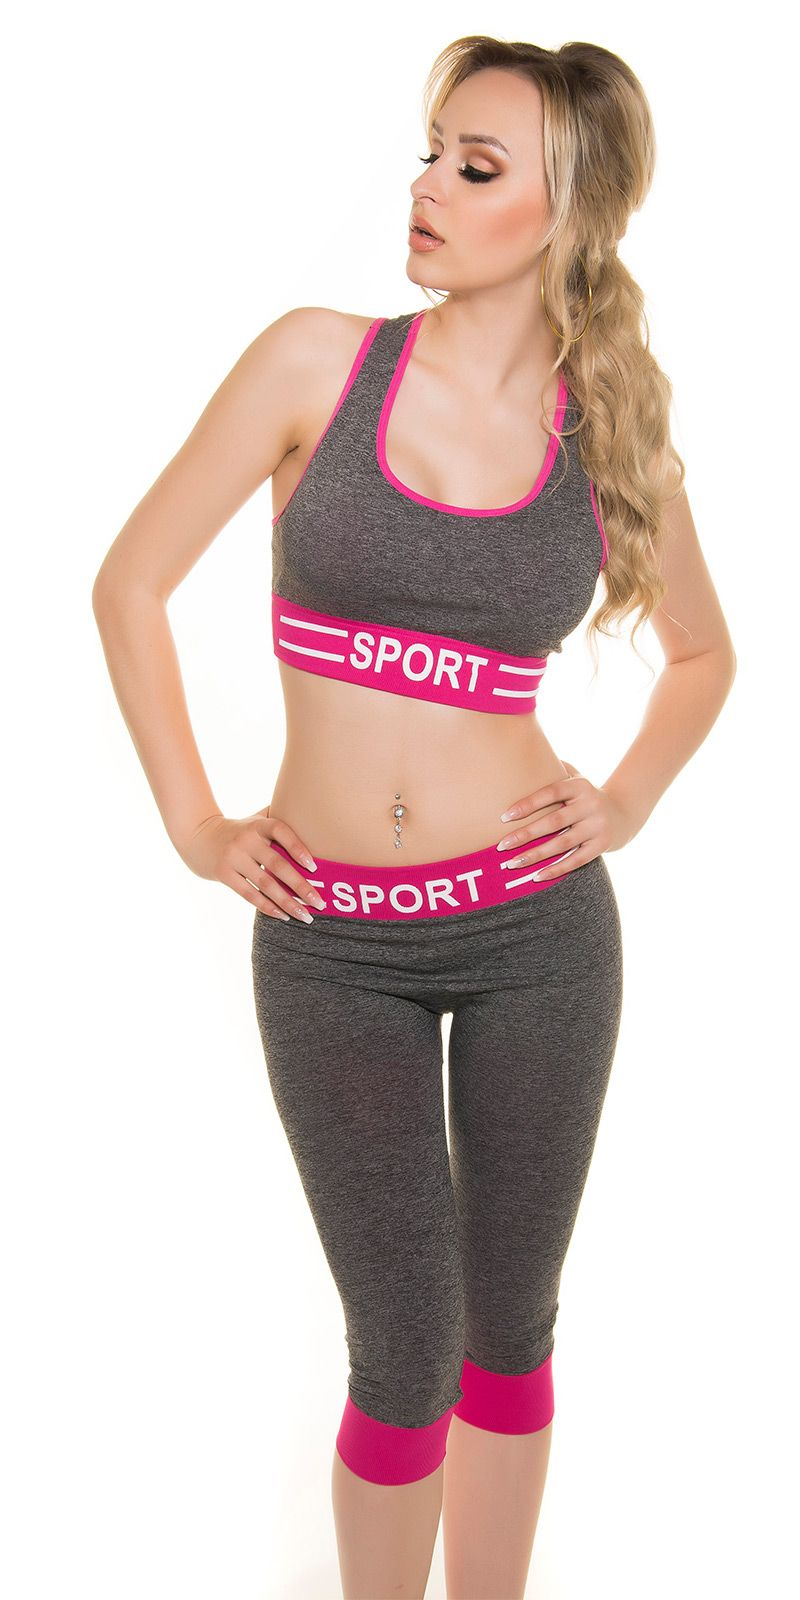 ENSEMBLE SPORT FASHION ÉTÉ FITNESS YOGA LEGGING + TOP NOIR FUCHSIA T.U. 34/36/38 - ENSEMBLE SPORT FASHION NOIR chiné /FUCHSIA - Legging 3/4 + Top brassière